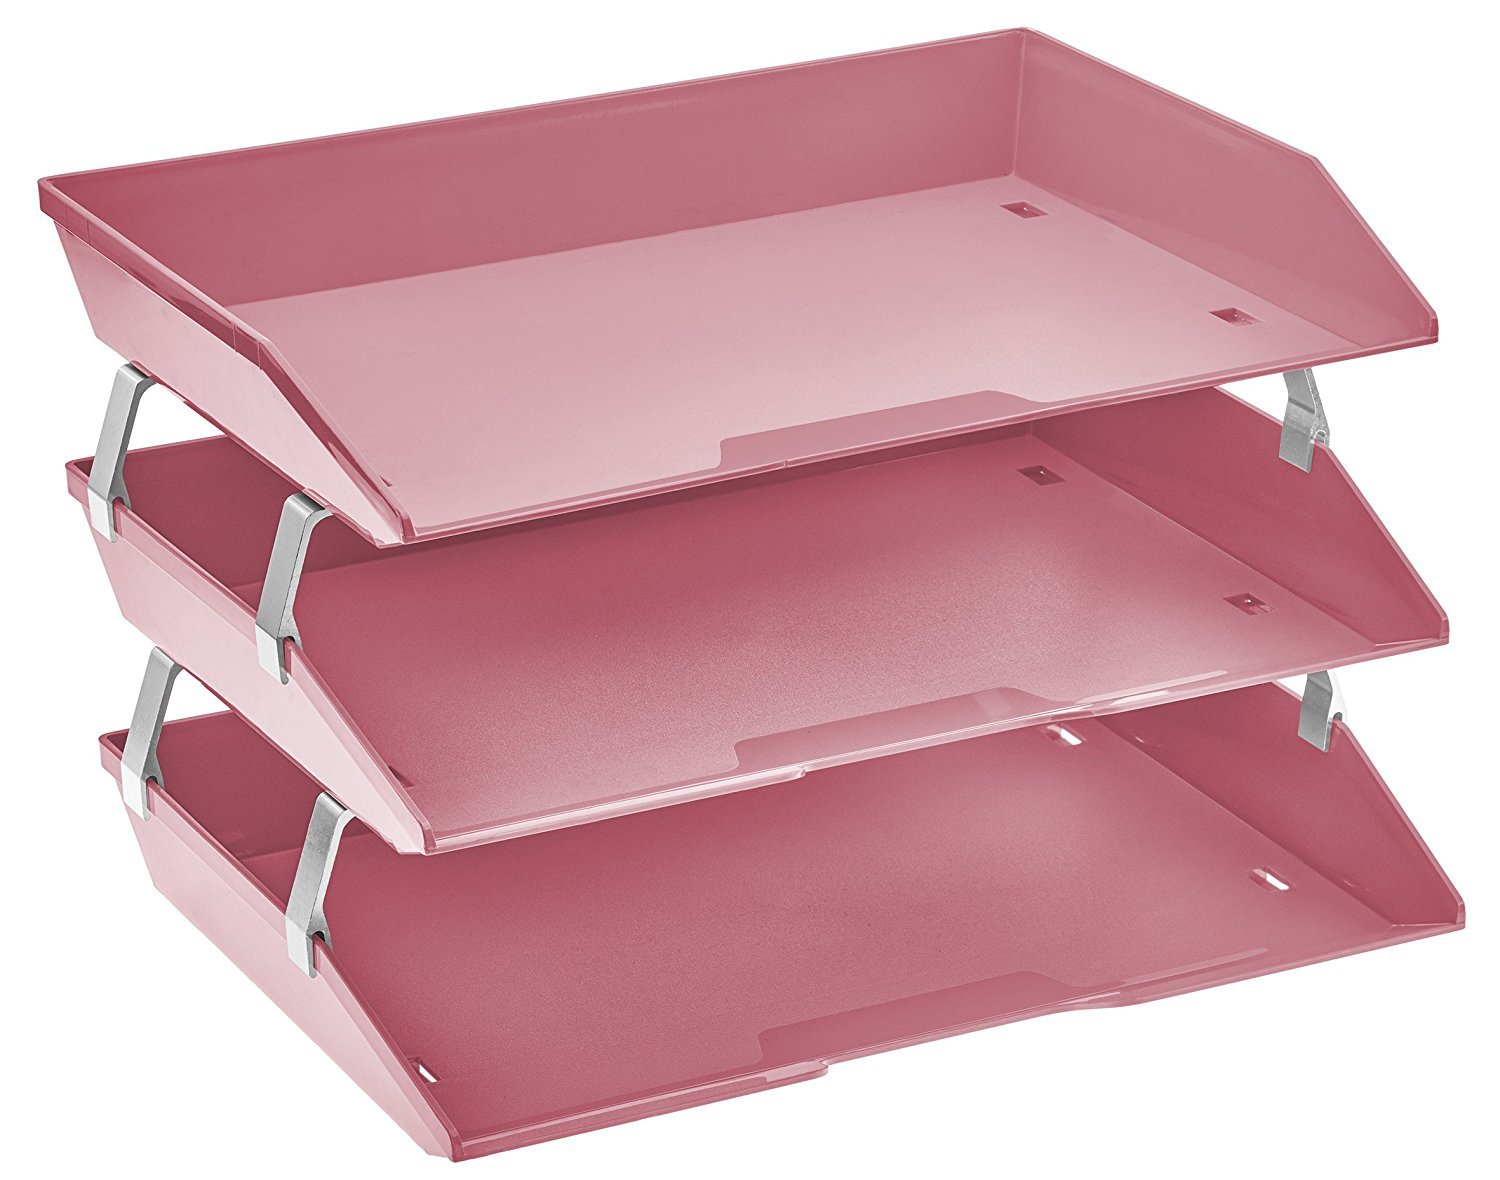 Solid Pink Color Acrimet Facility 3 Tiers Triple Letter Tray A4